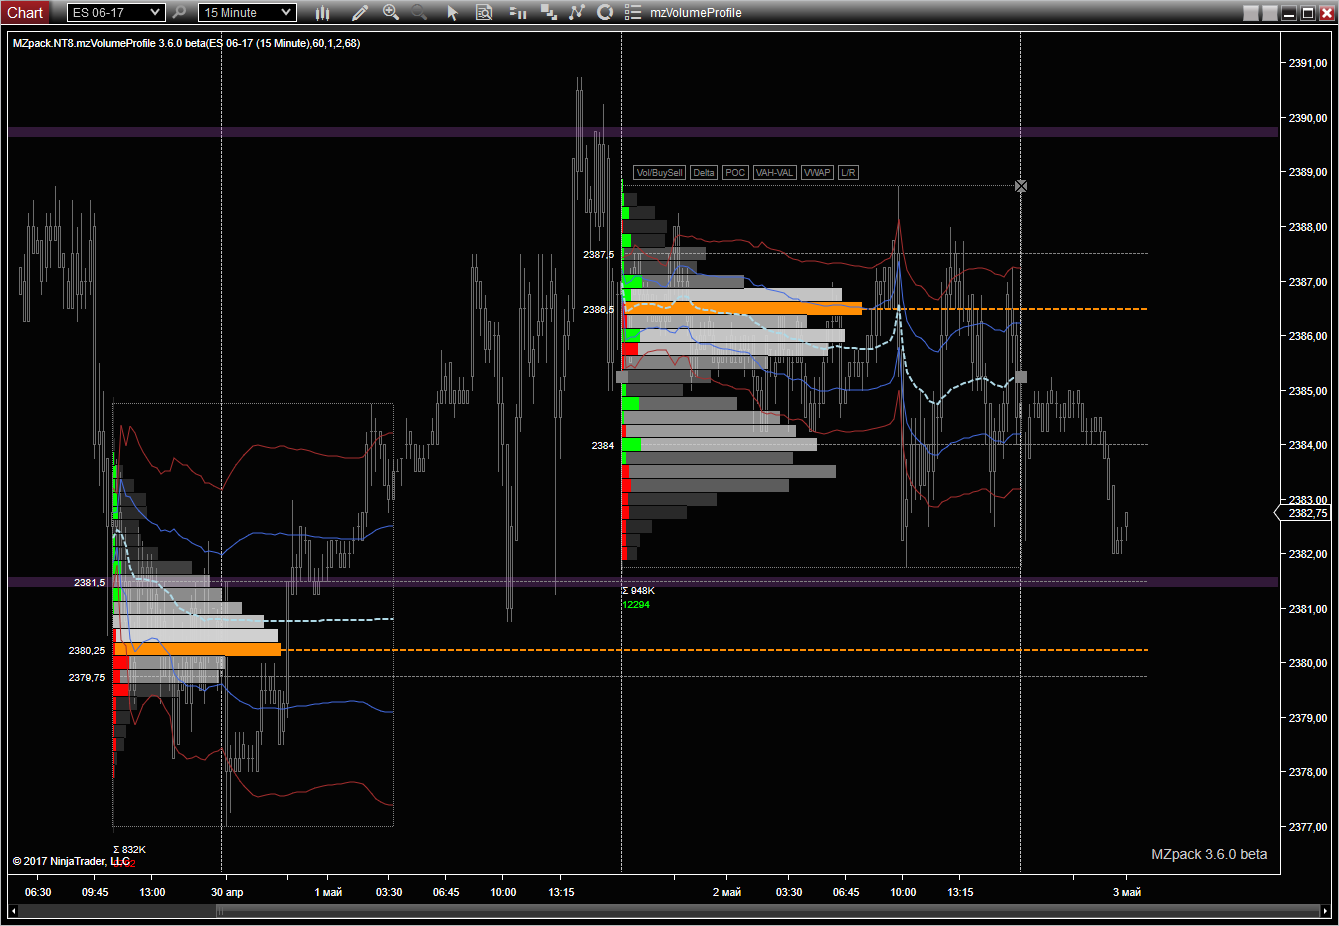 mzpack-custom-ranged-volume-profile-for-ninjatrader-8